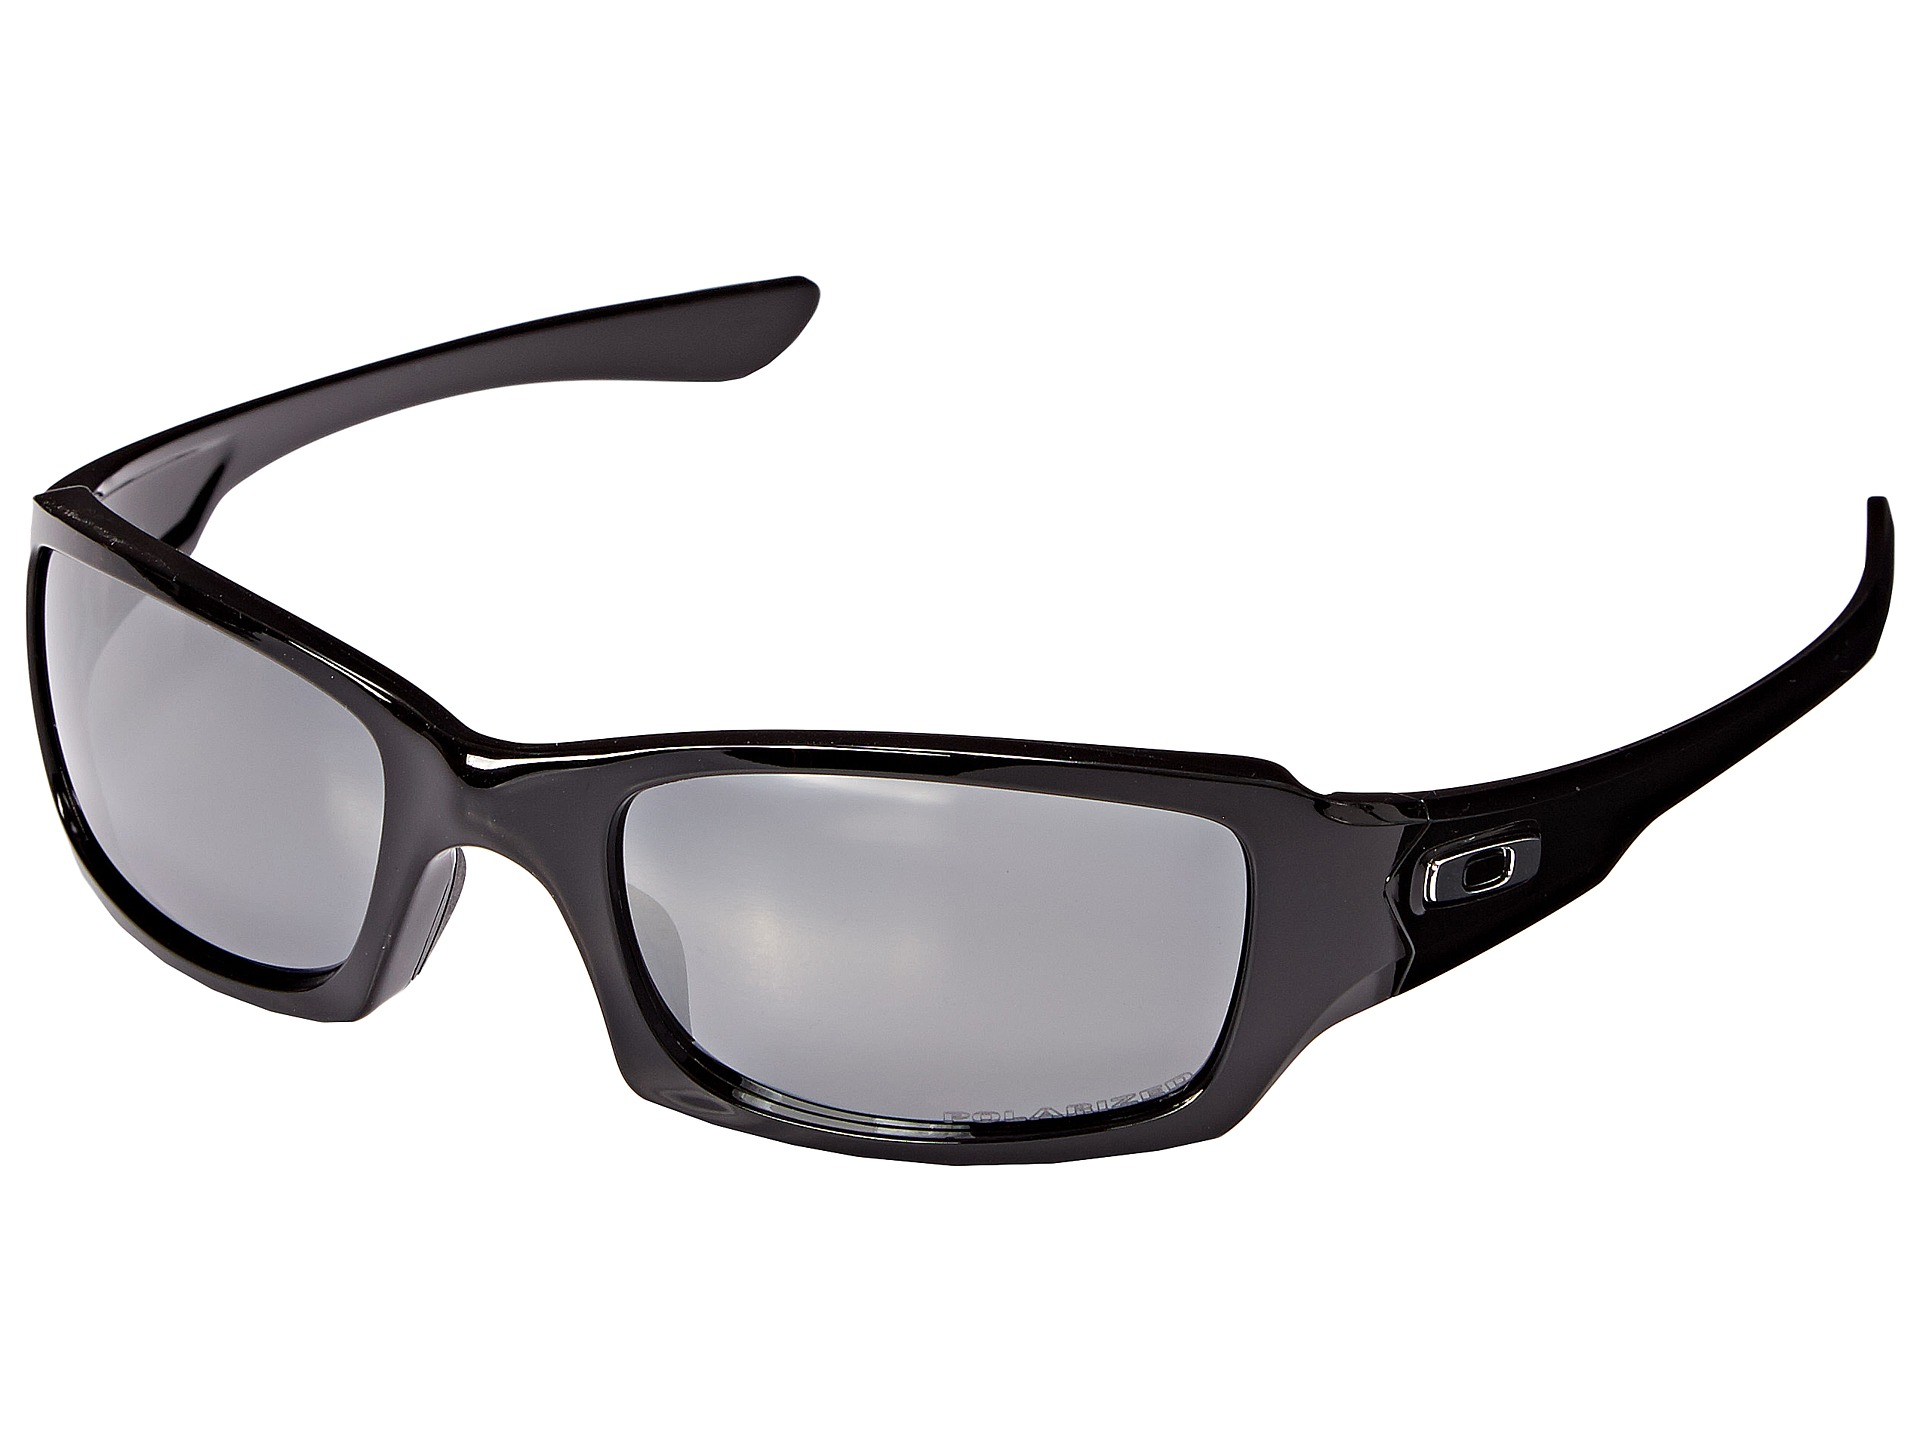 oakley fives squared  Oakley Fives Squared - Zappos.com Free Shipping BOTH Ways